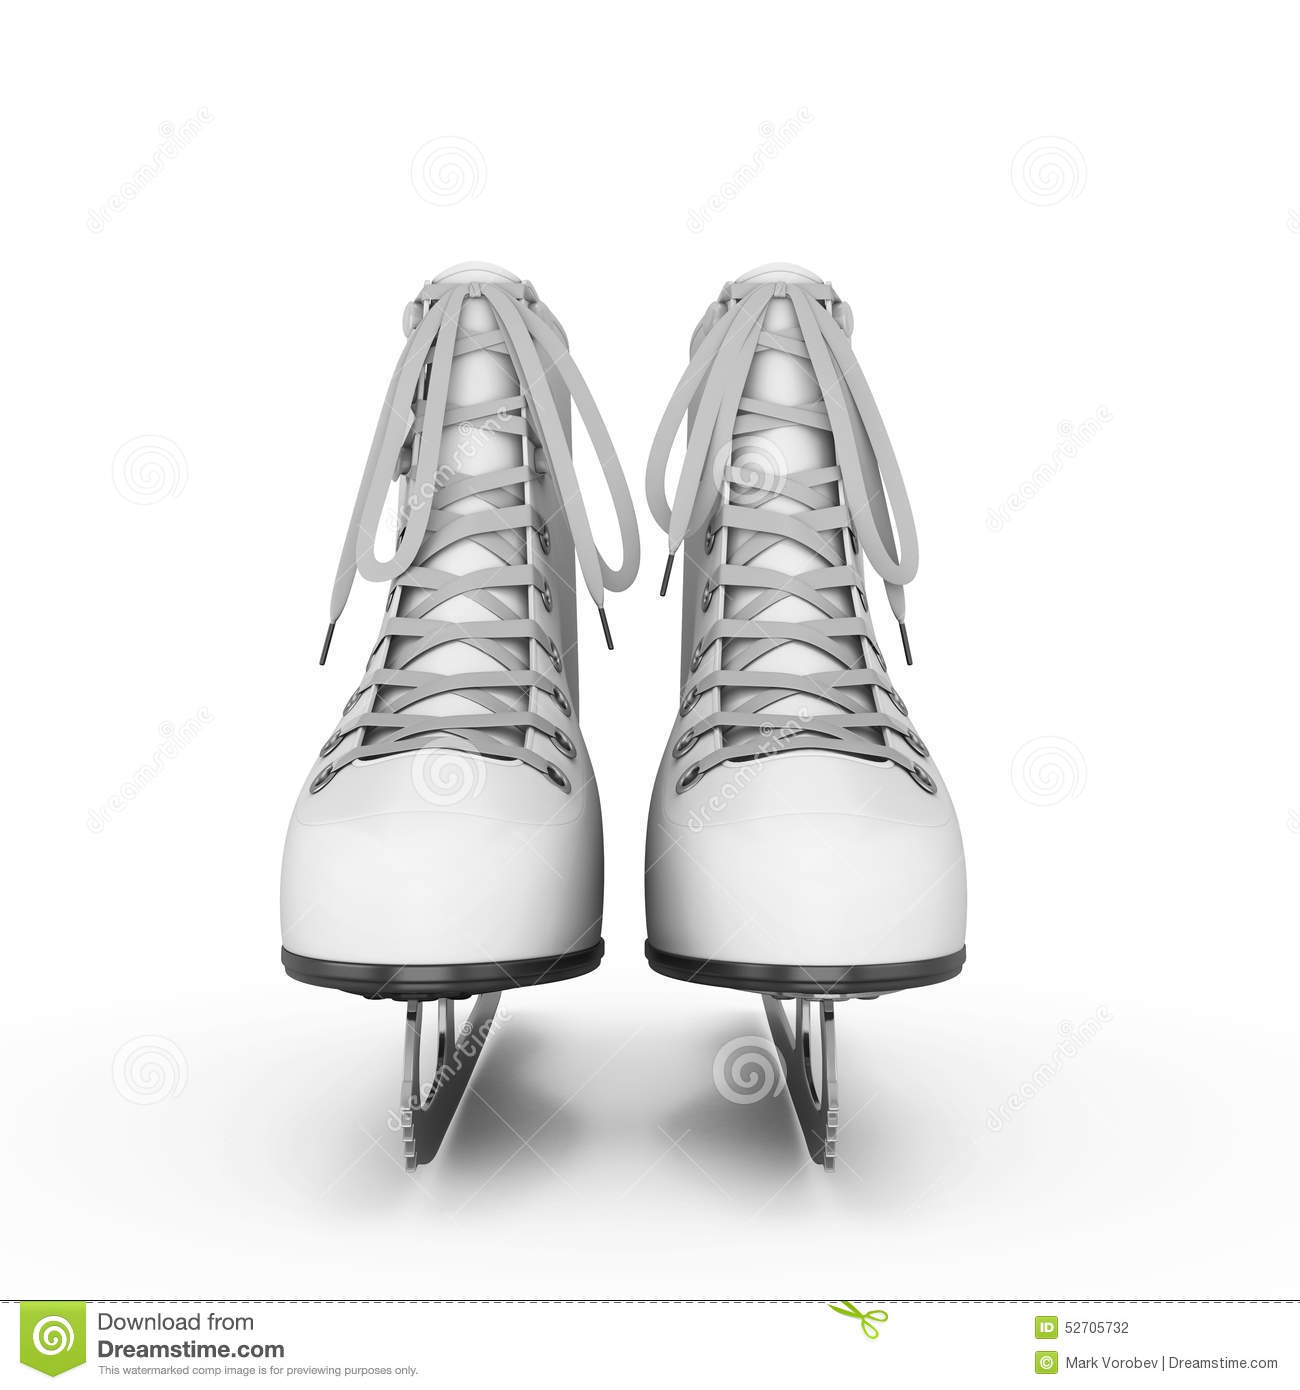 The Female Skates And Boots Of White Color For Figure ...